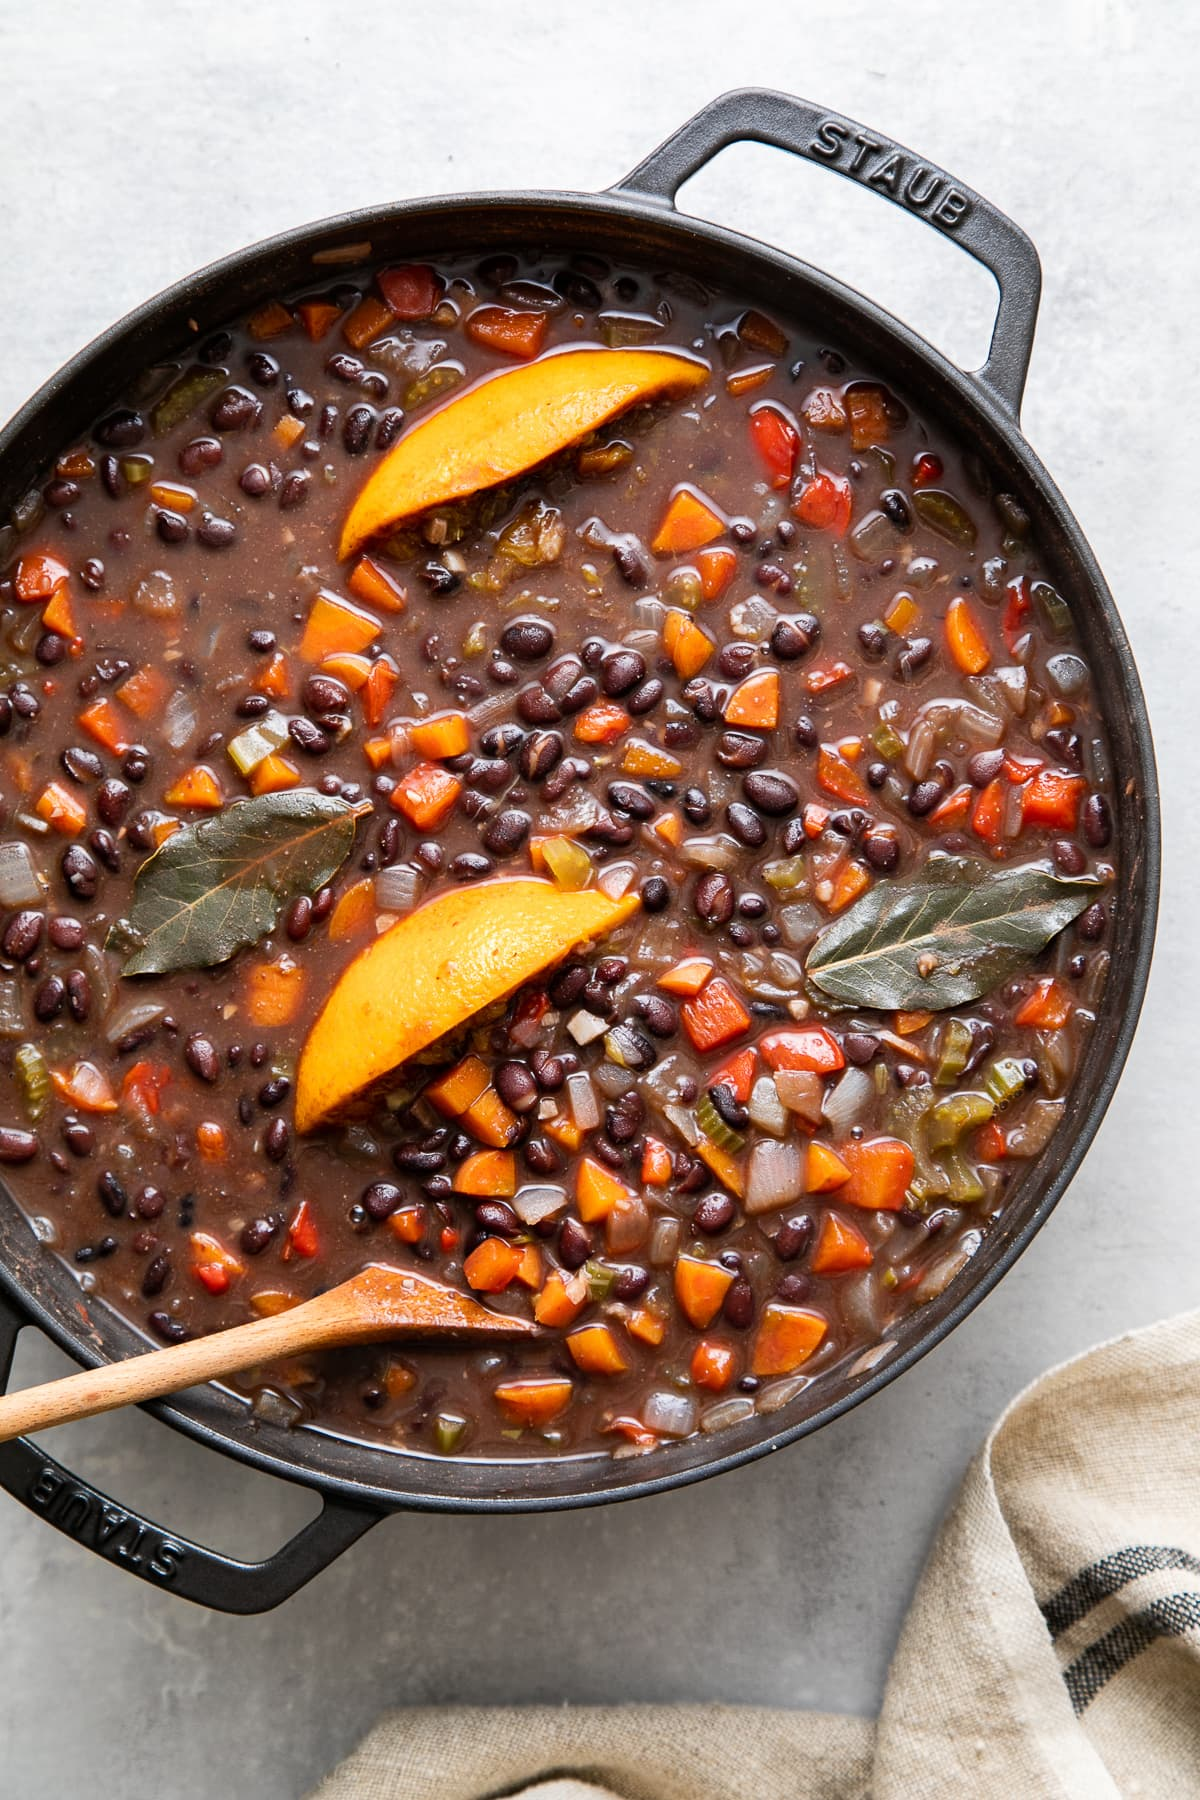 top down view of freshly made pot of cuban black bean soup in a black pot before pureeing.